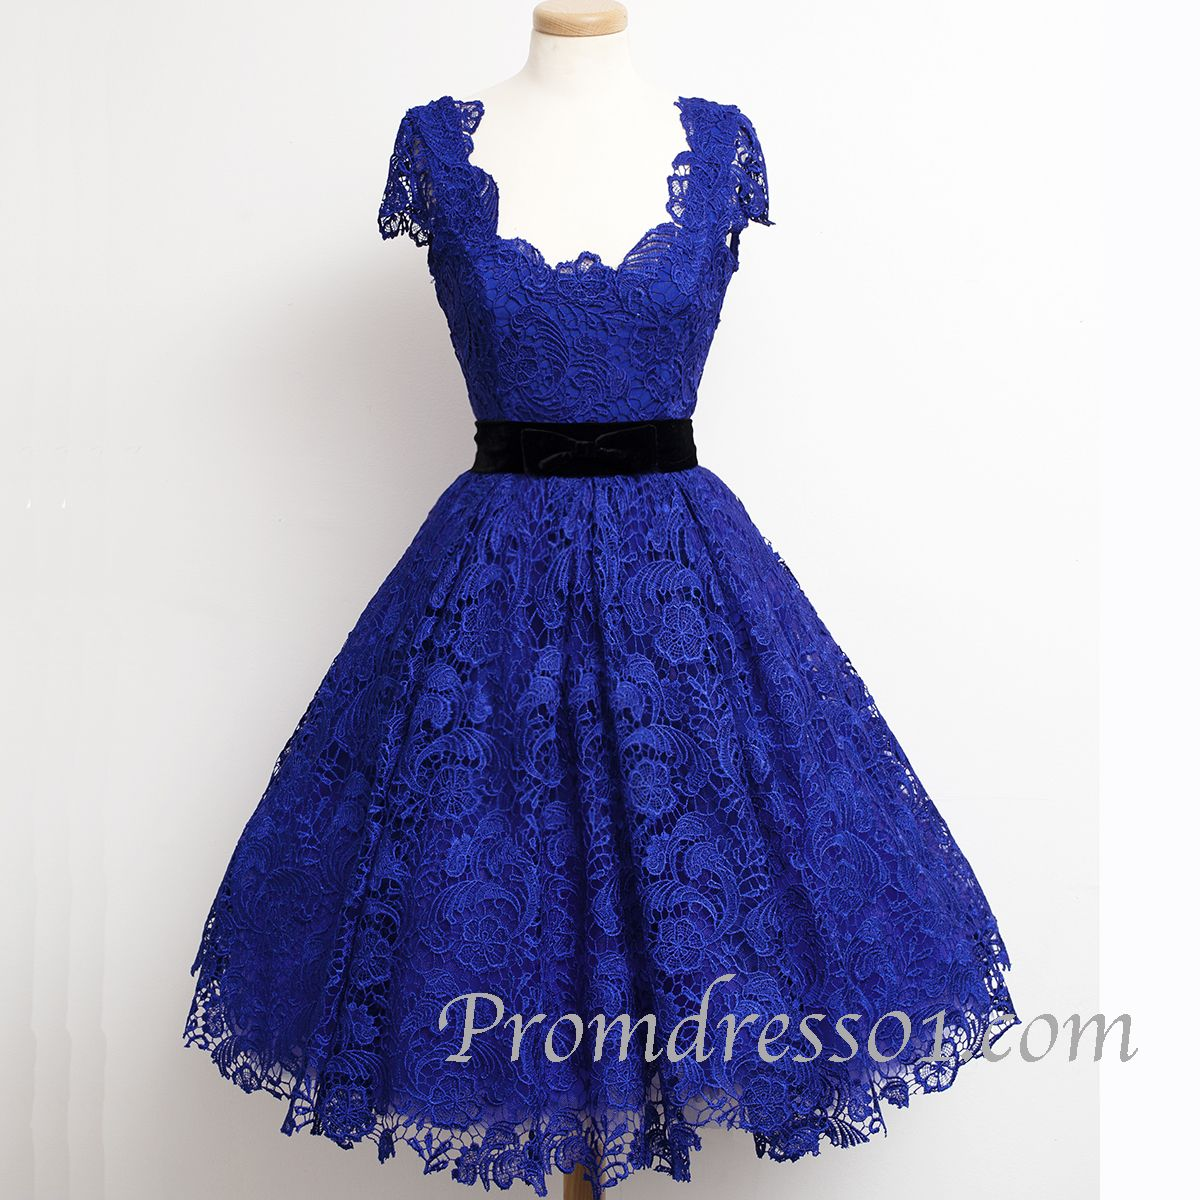 Elegant navy blue short sleeves vintage lace modest short prom dress